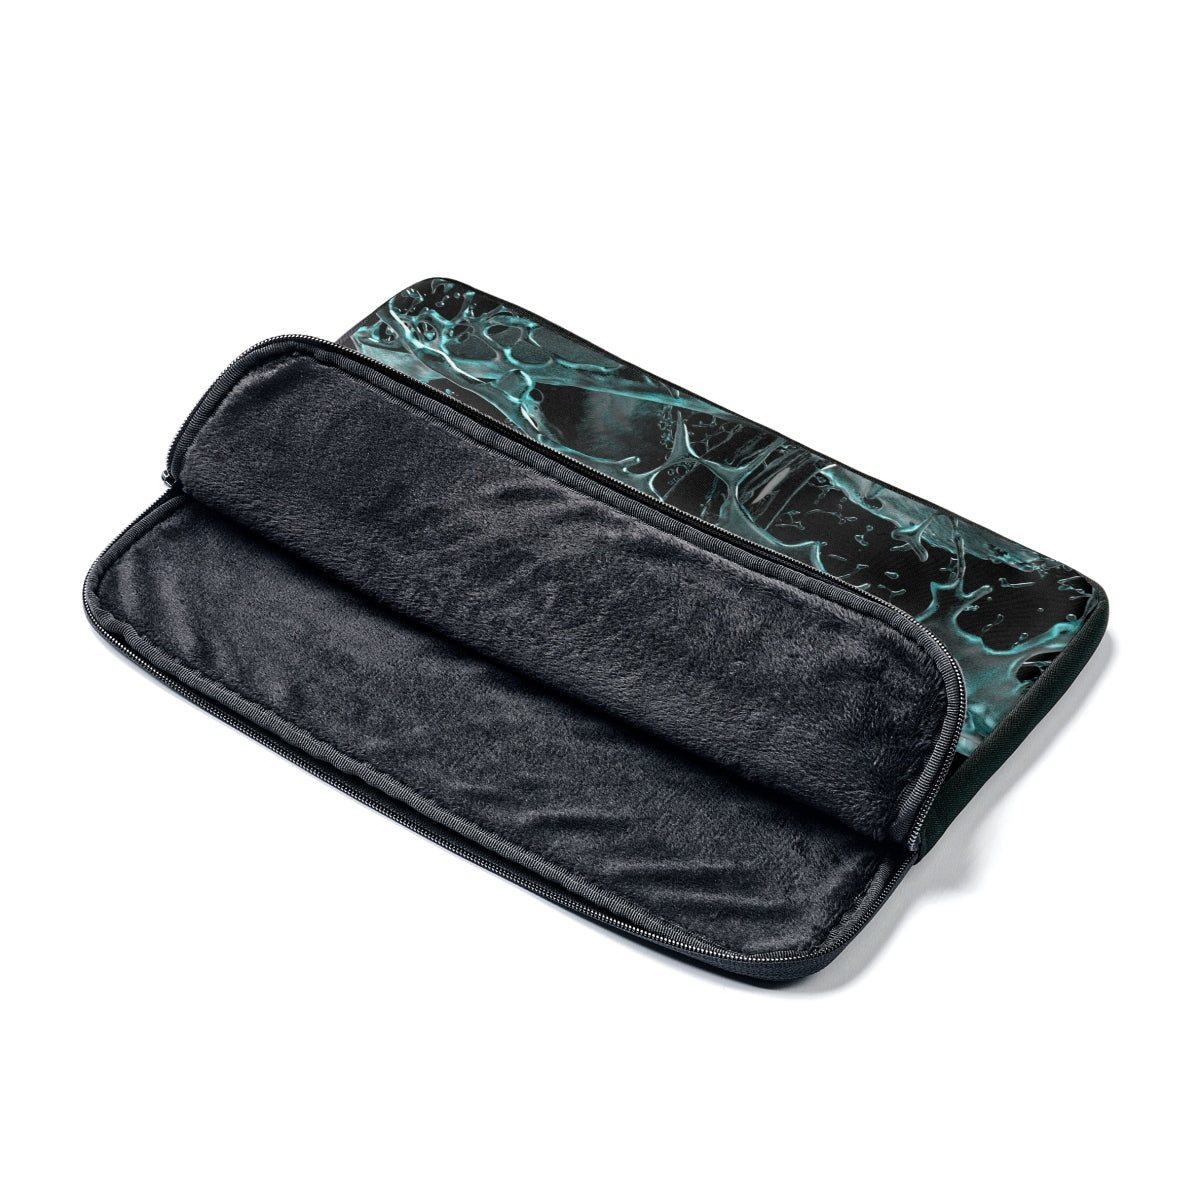 Aqua Laptop Sleeve